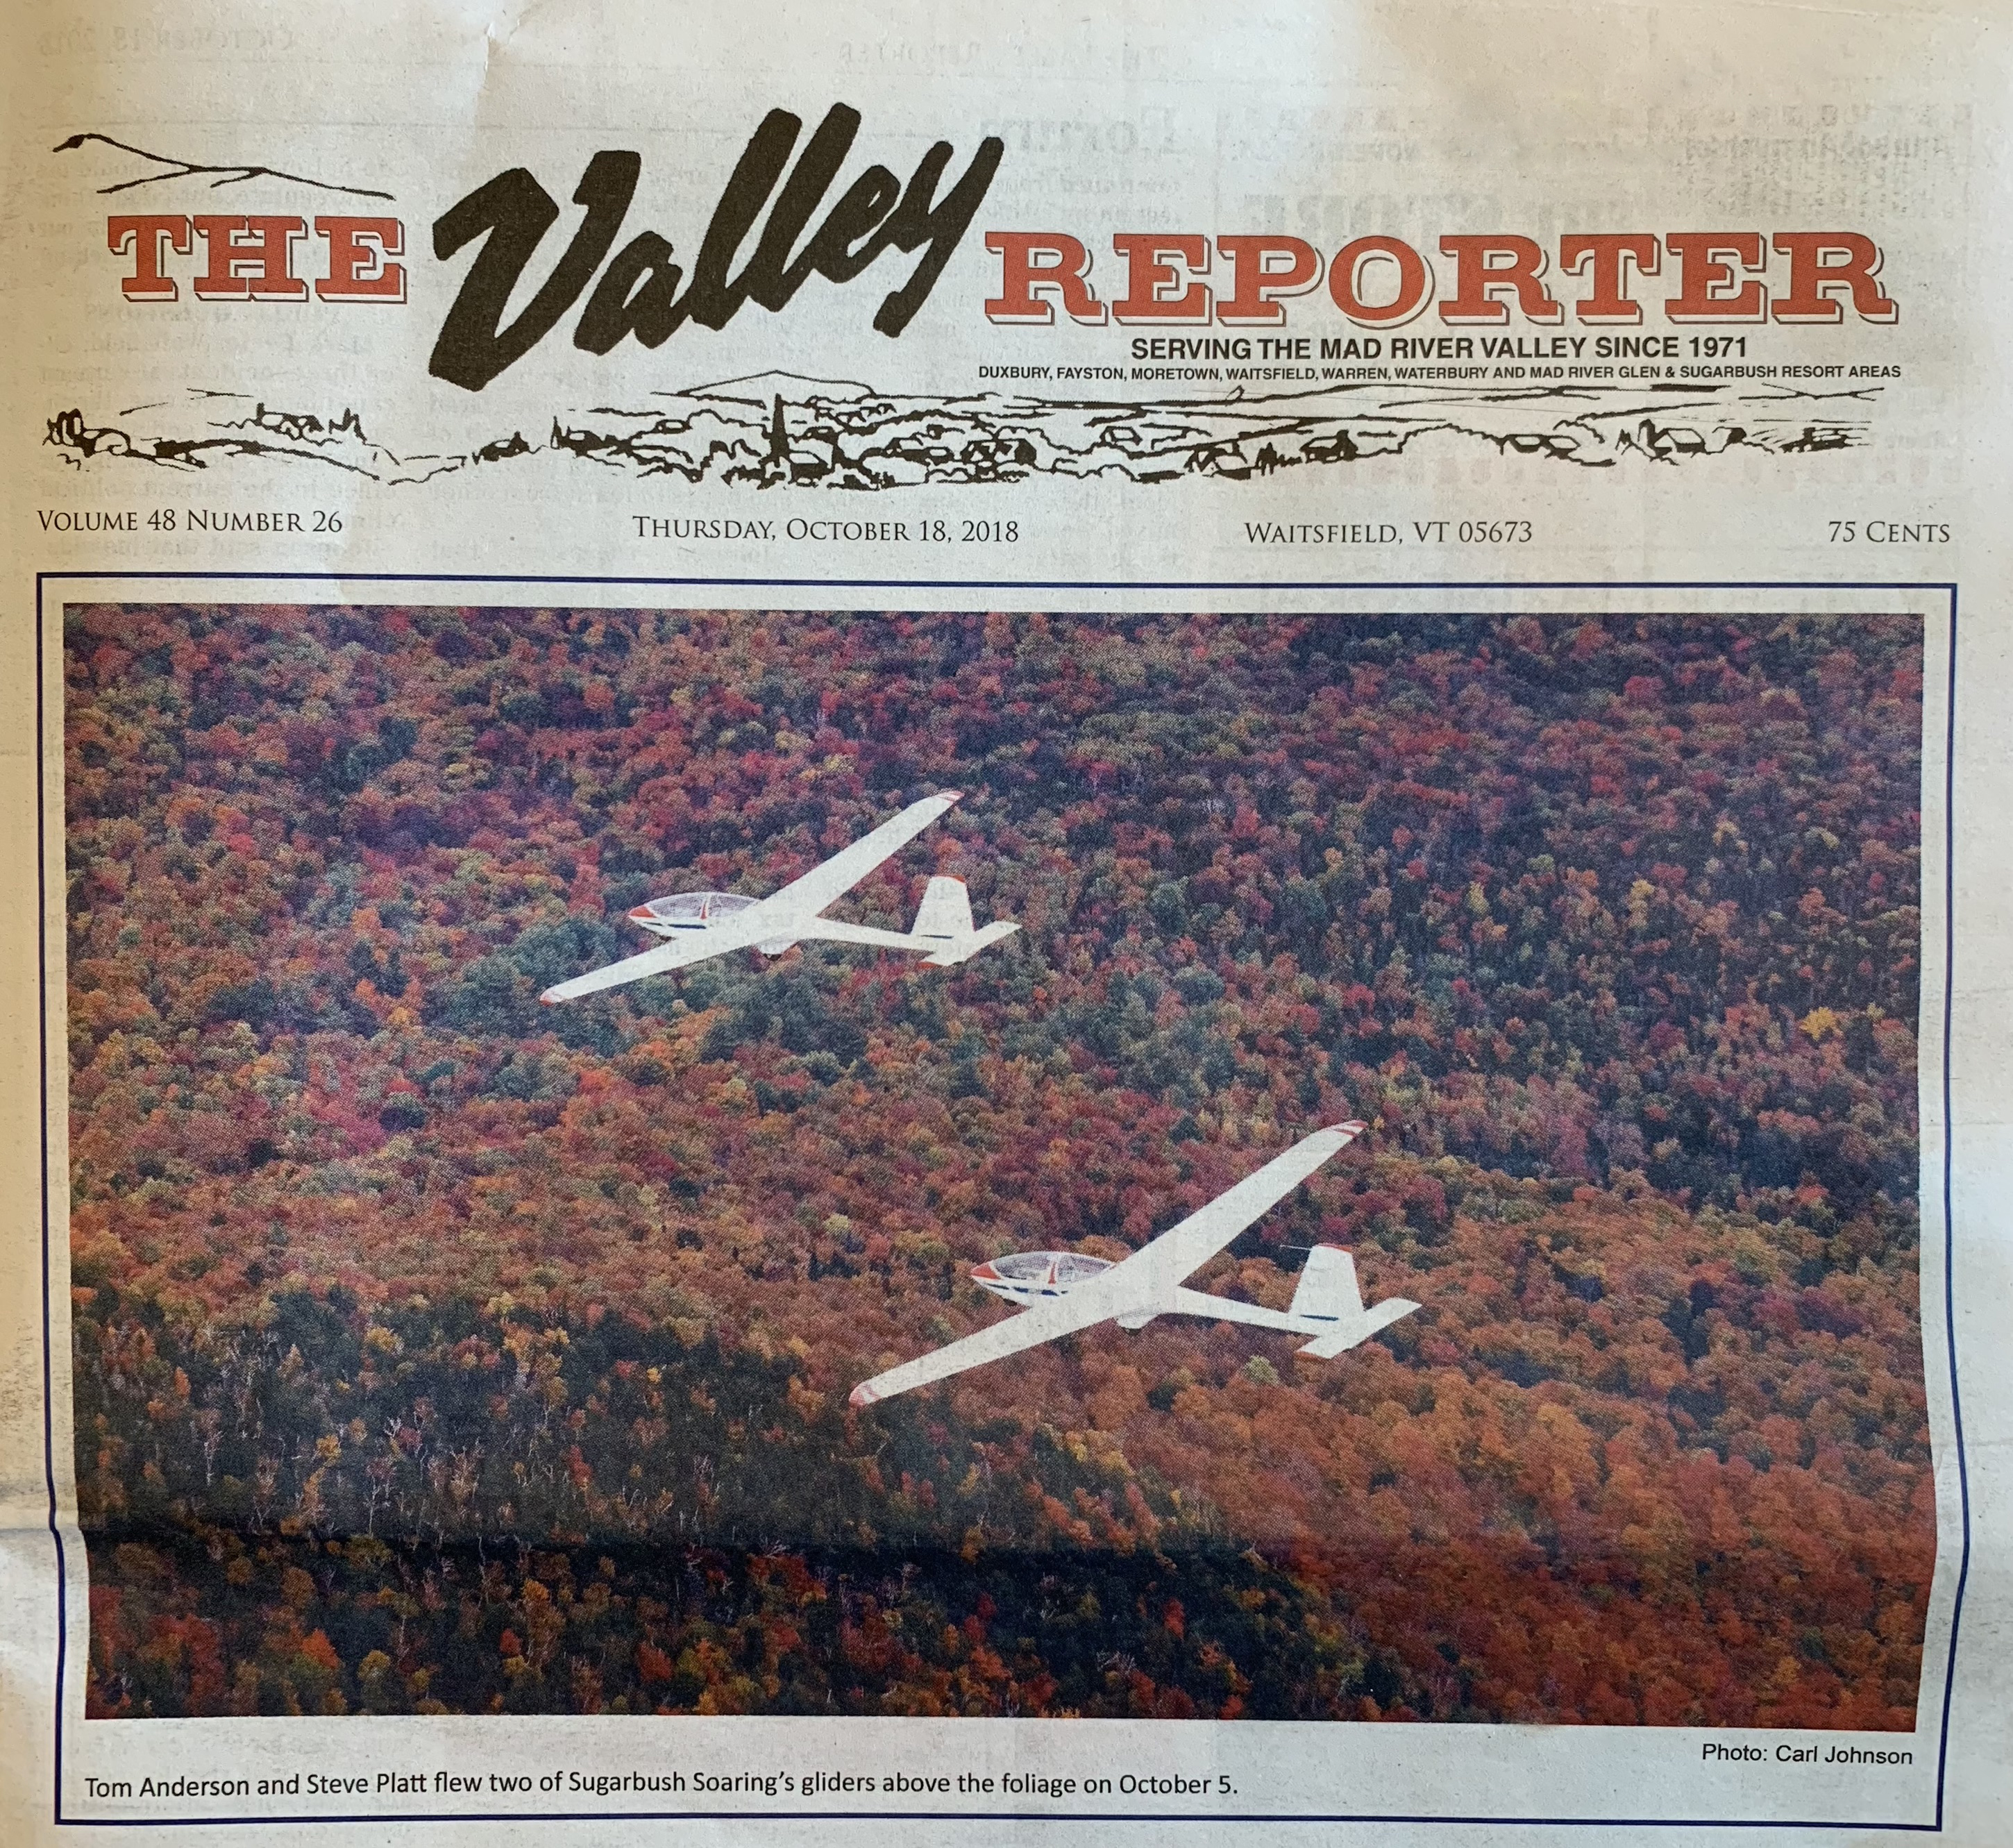 Valley Reporter Foliage Flight Cover